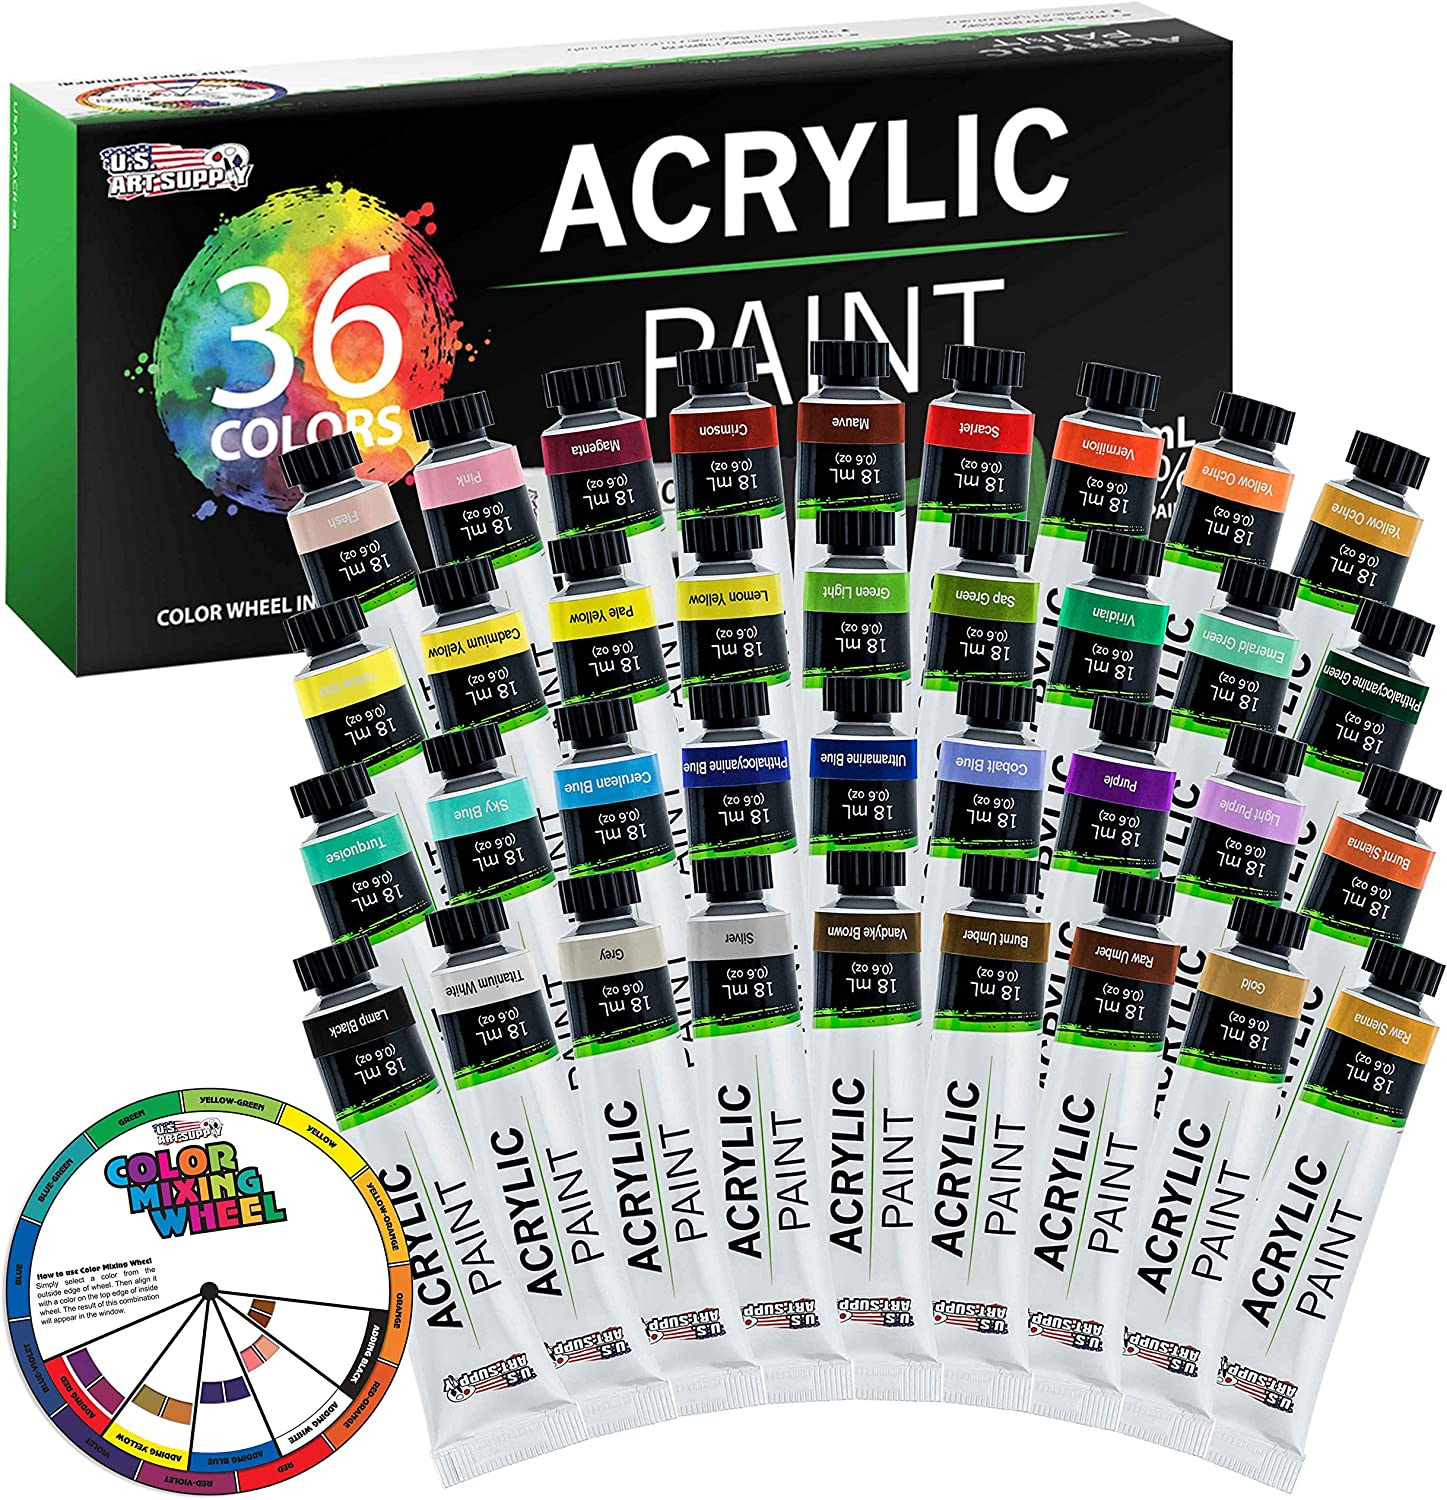 U.S. Art Supply Professional 36 Color Set of Acrylic Paint in Large 18ml Tubes - Rich Vivid Colors for Artists, Students, Beginners - Canvas Portrait Paintings - Bonus Color Mixing Wheel